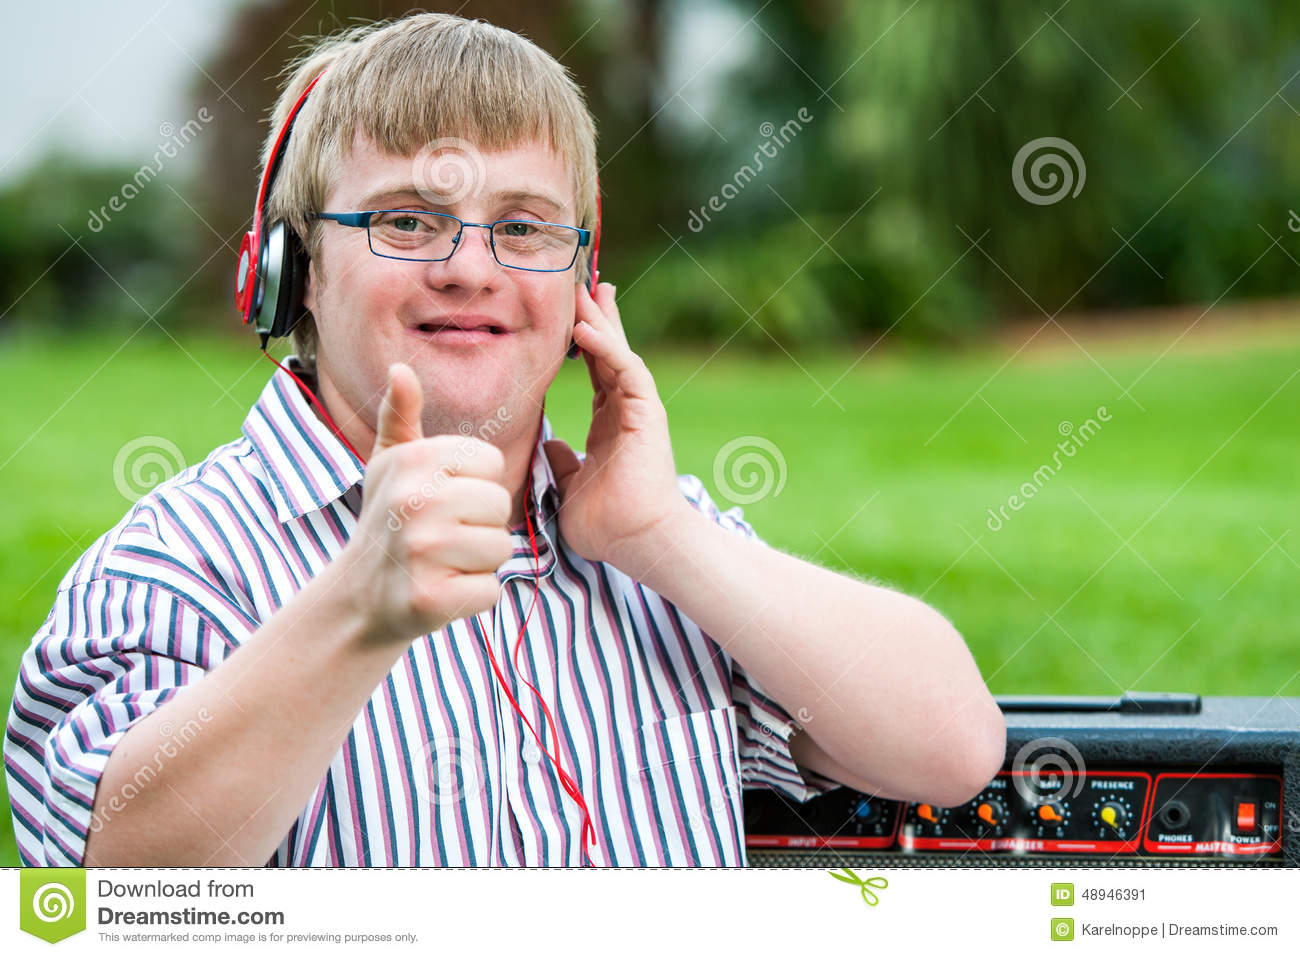 Down Syndrome Boy With Headset Doing Thumbs Up  Stock Image